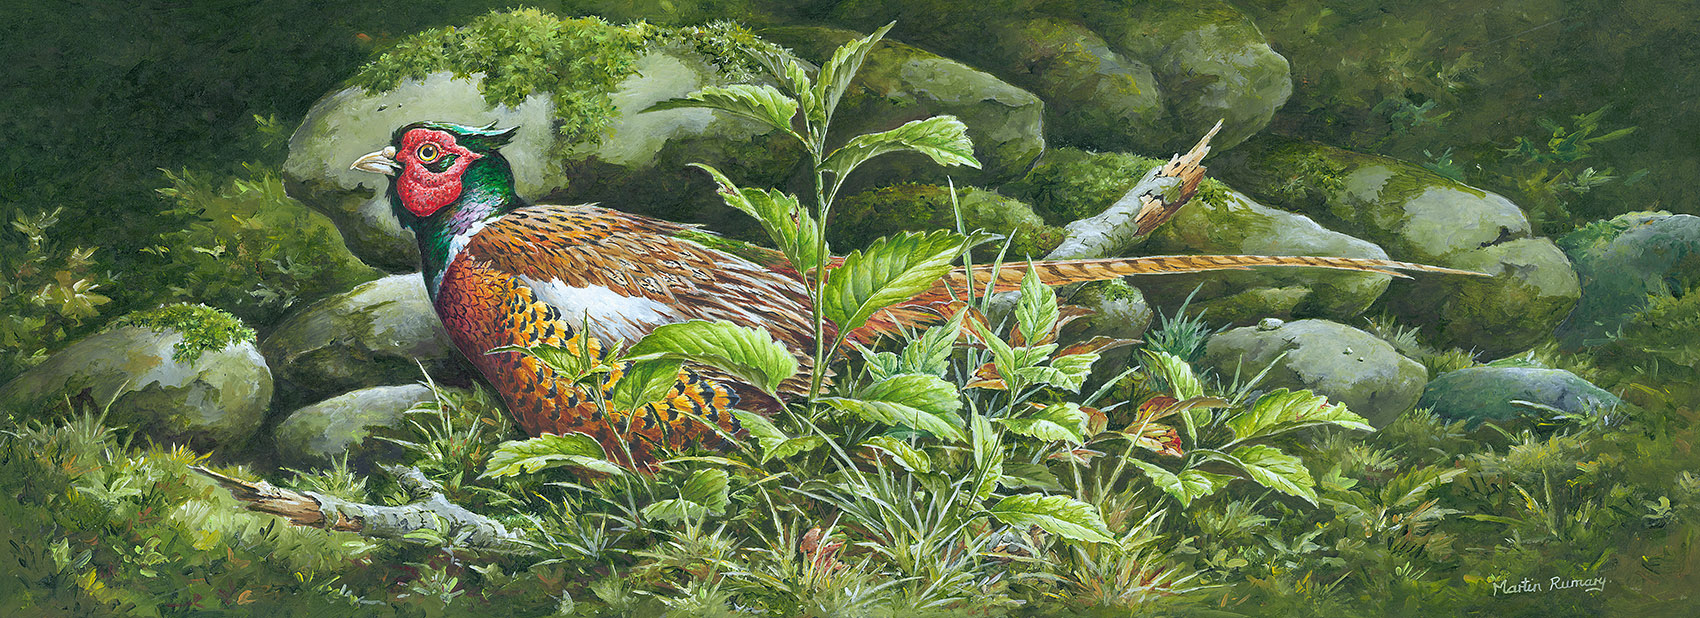 "Cock Pheasant. By Martin Rumary Acrylic 22""x 8"" (image size) £675"